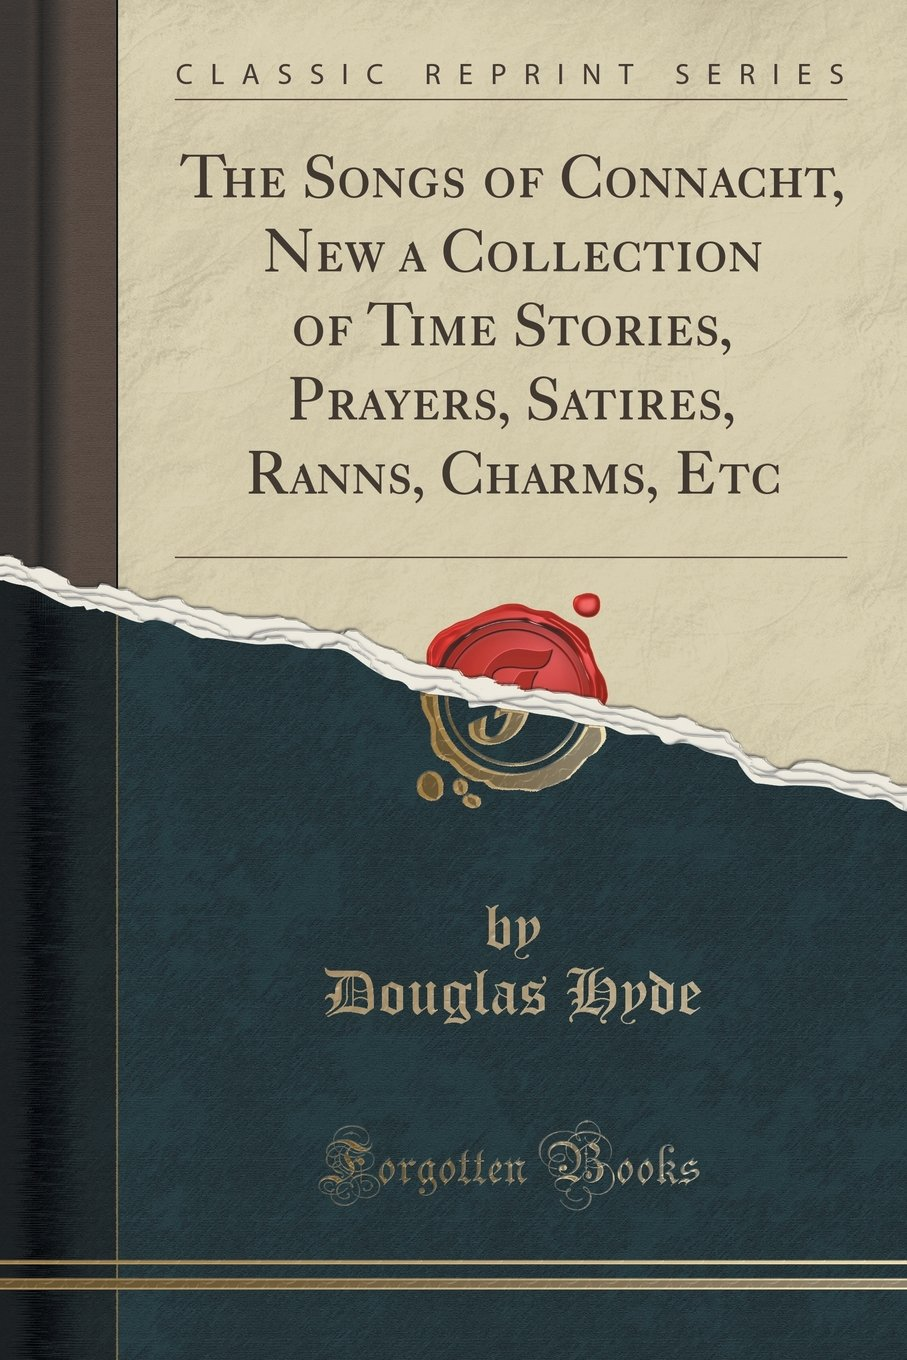 The Songs of Connacht, New a Collection of Time Stories, Prayers, Satires, Ranns, Charms, Etc (Classic Reprint) pdf